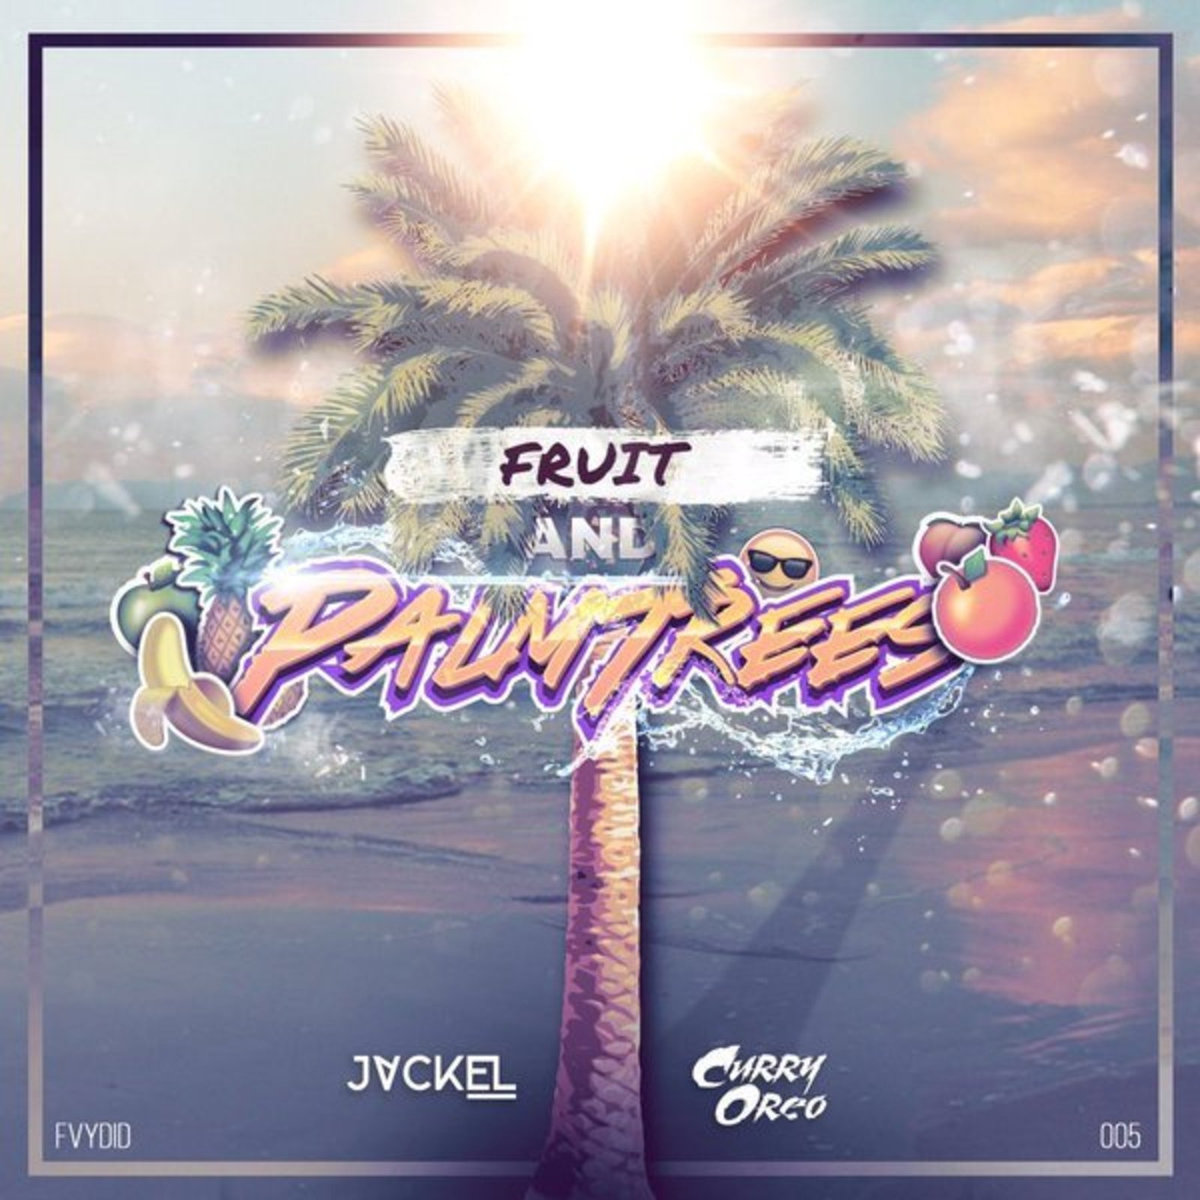 JackEL & Curry Oreo - I Need You @ 'Fruit and PalmTrees' album (edm, electronic)